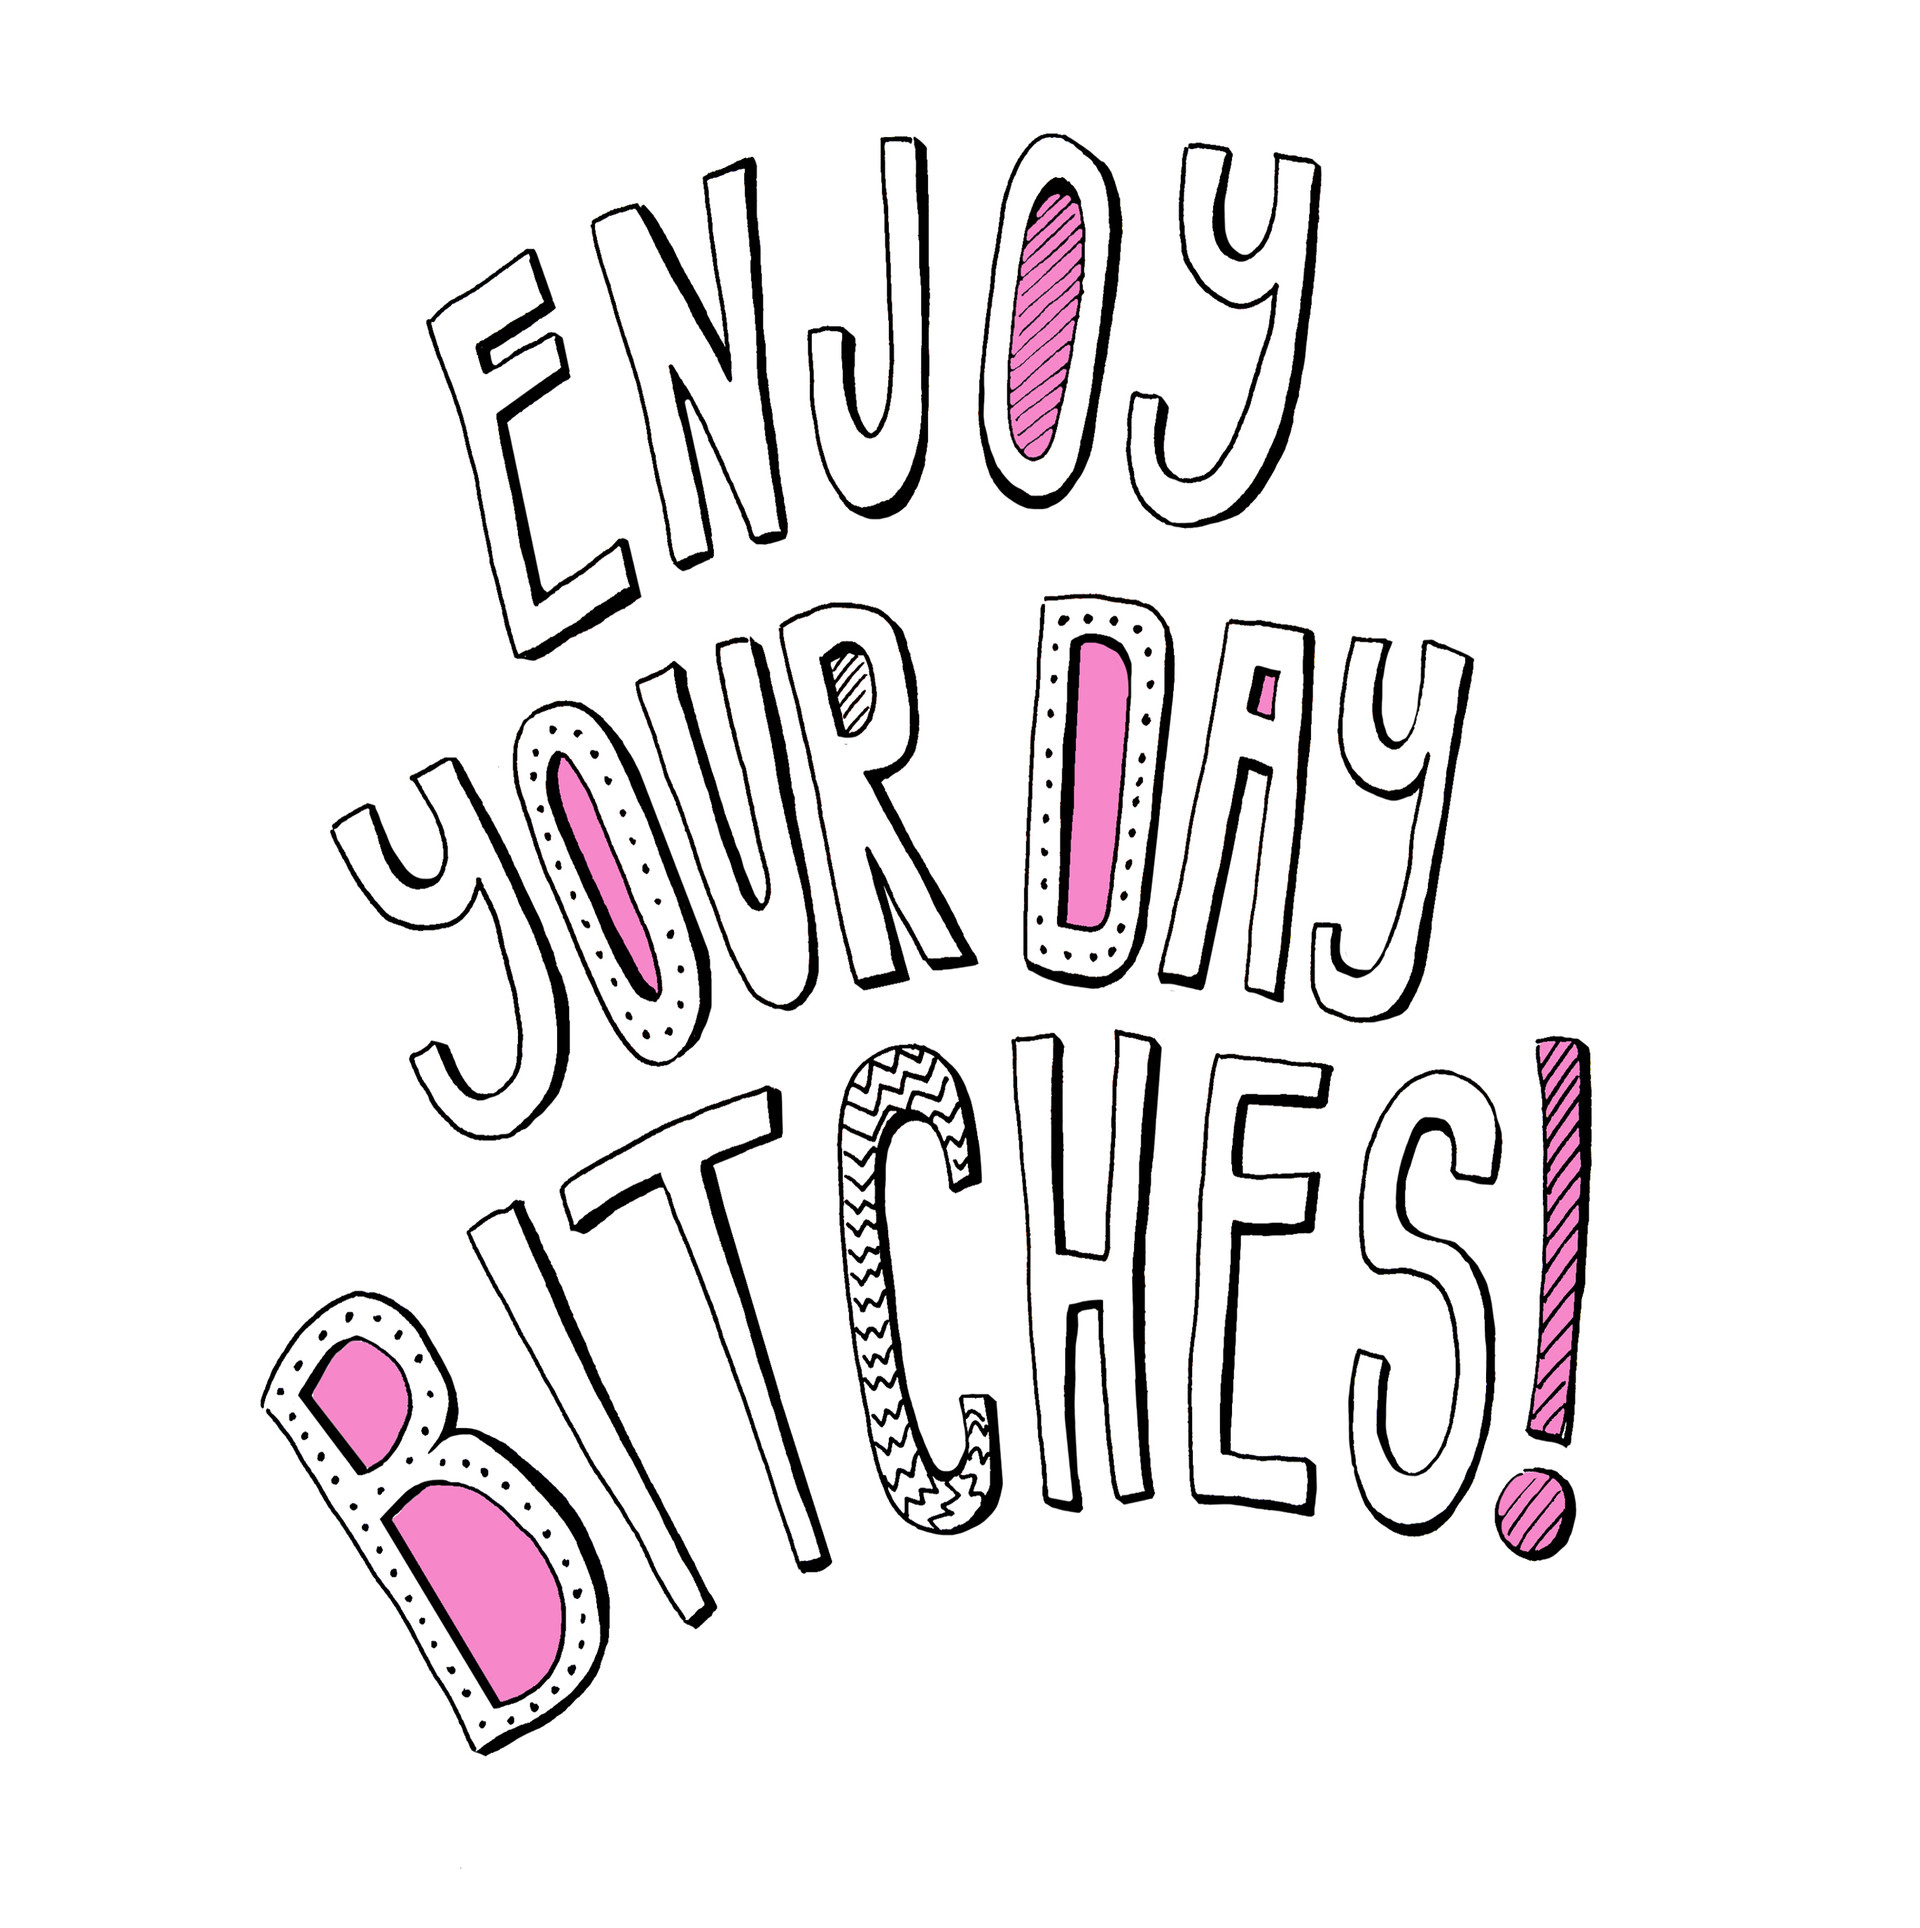 Enjoy your day, Bitches!